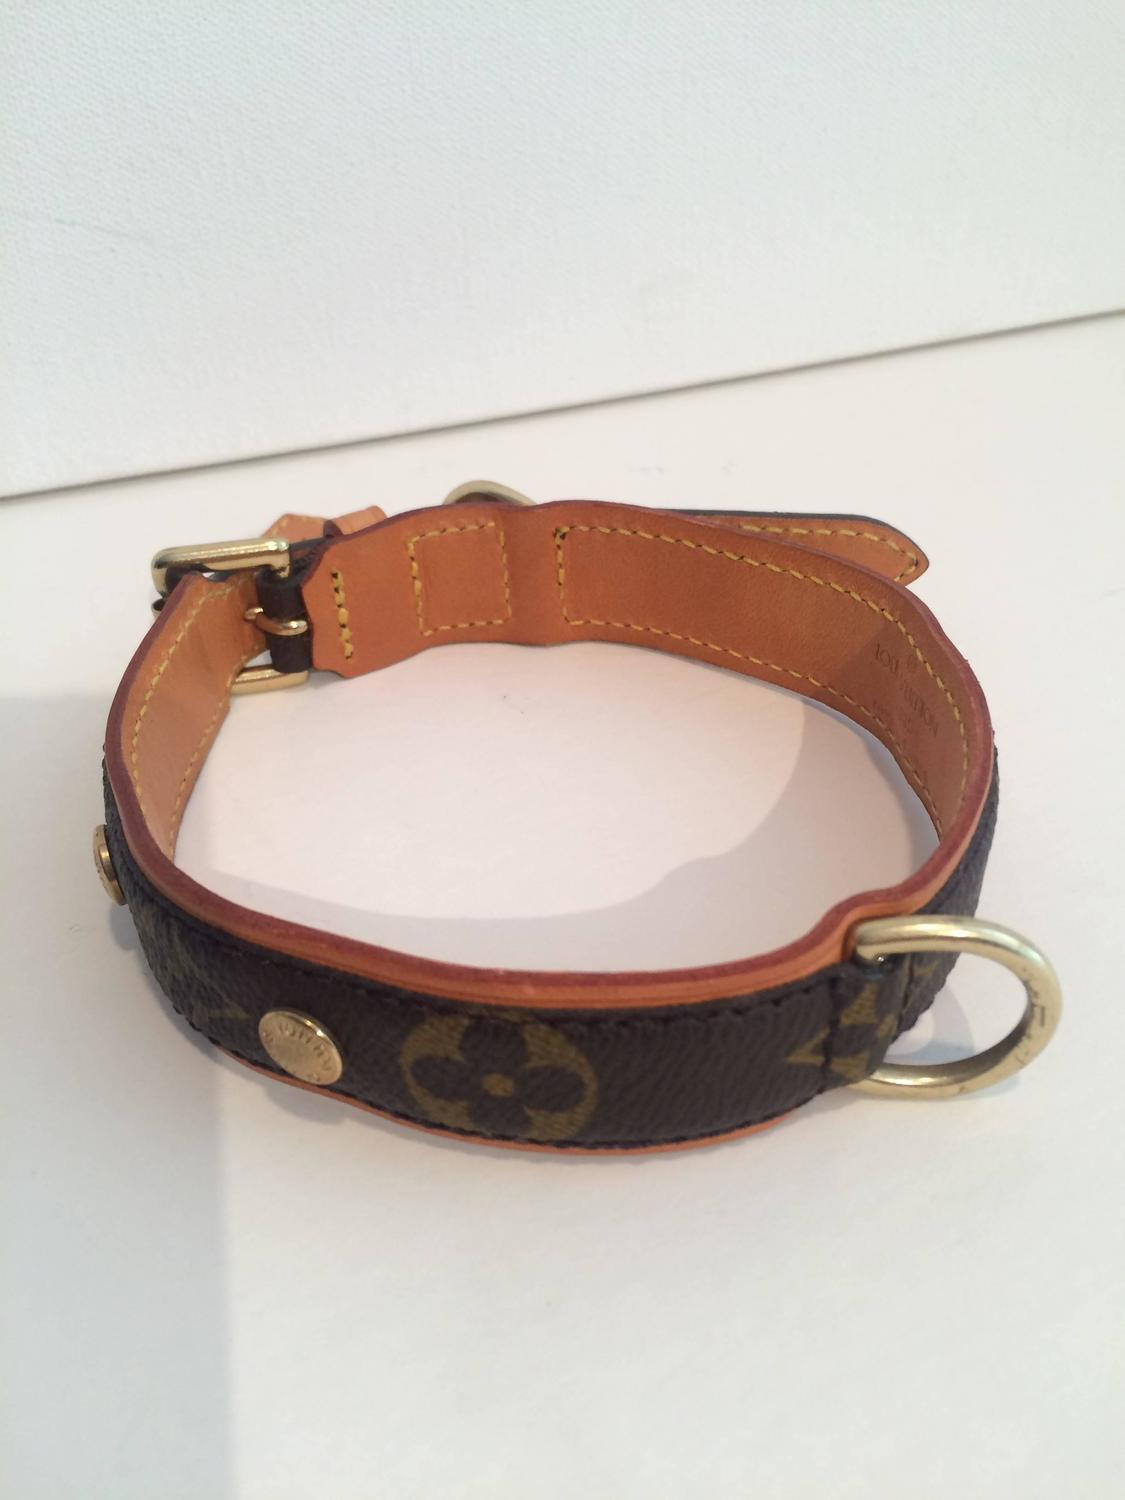 Chanel Dog Collar For Sale